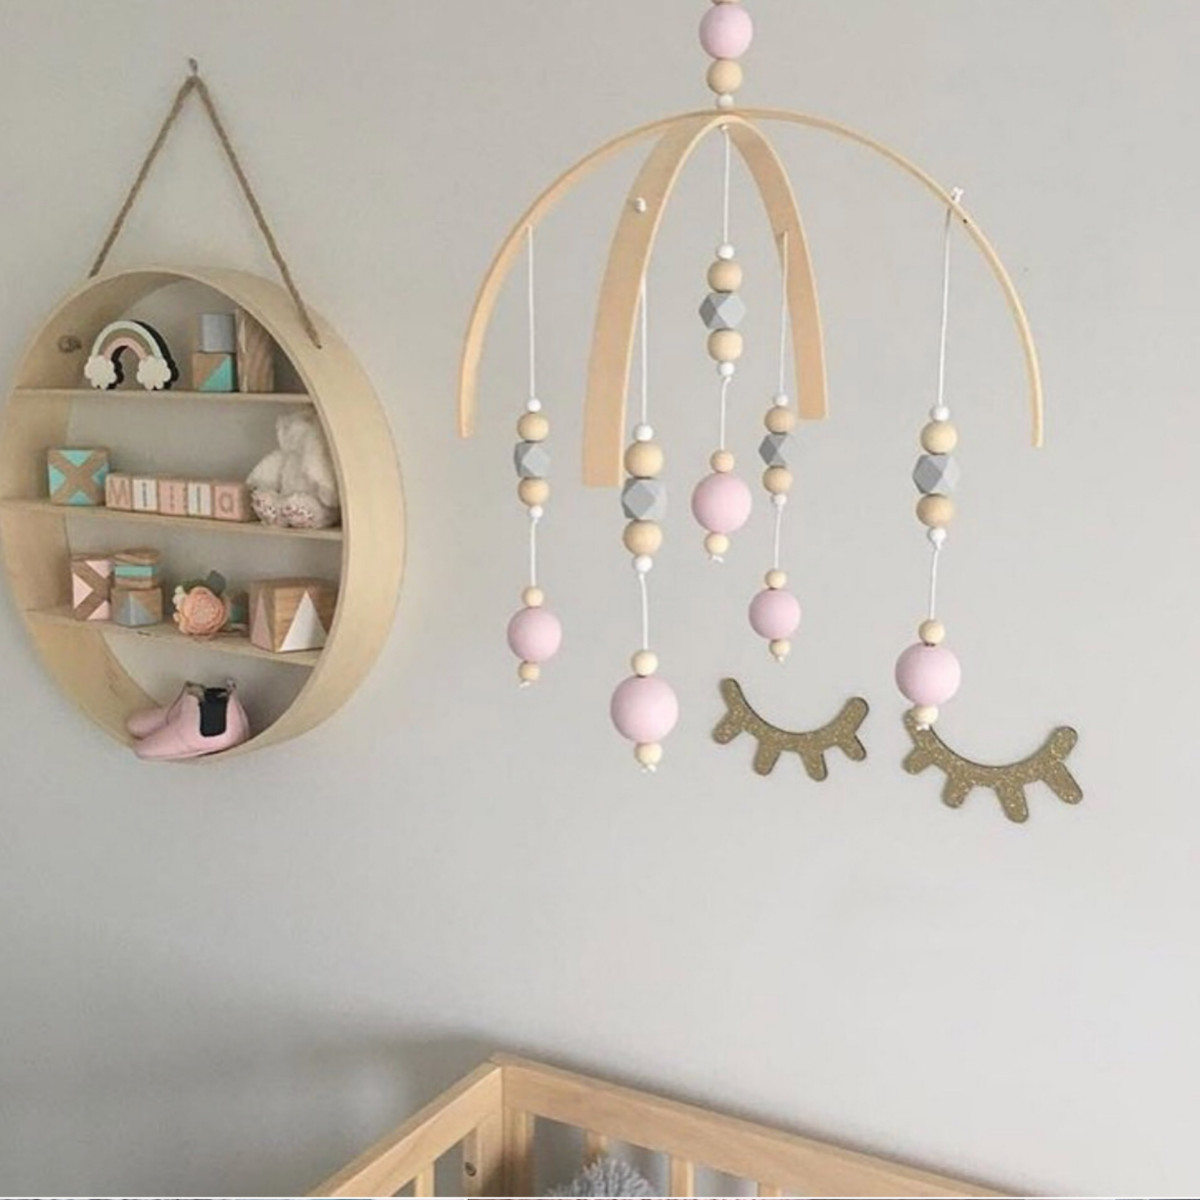 Wooden Baby Mobile Details About Diy Nursery Rotary Baby Mobile Crib Bed Toy Wind Up Wooden Beads Bell Holder